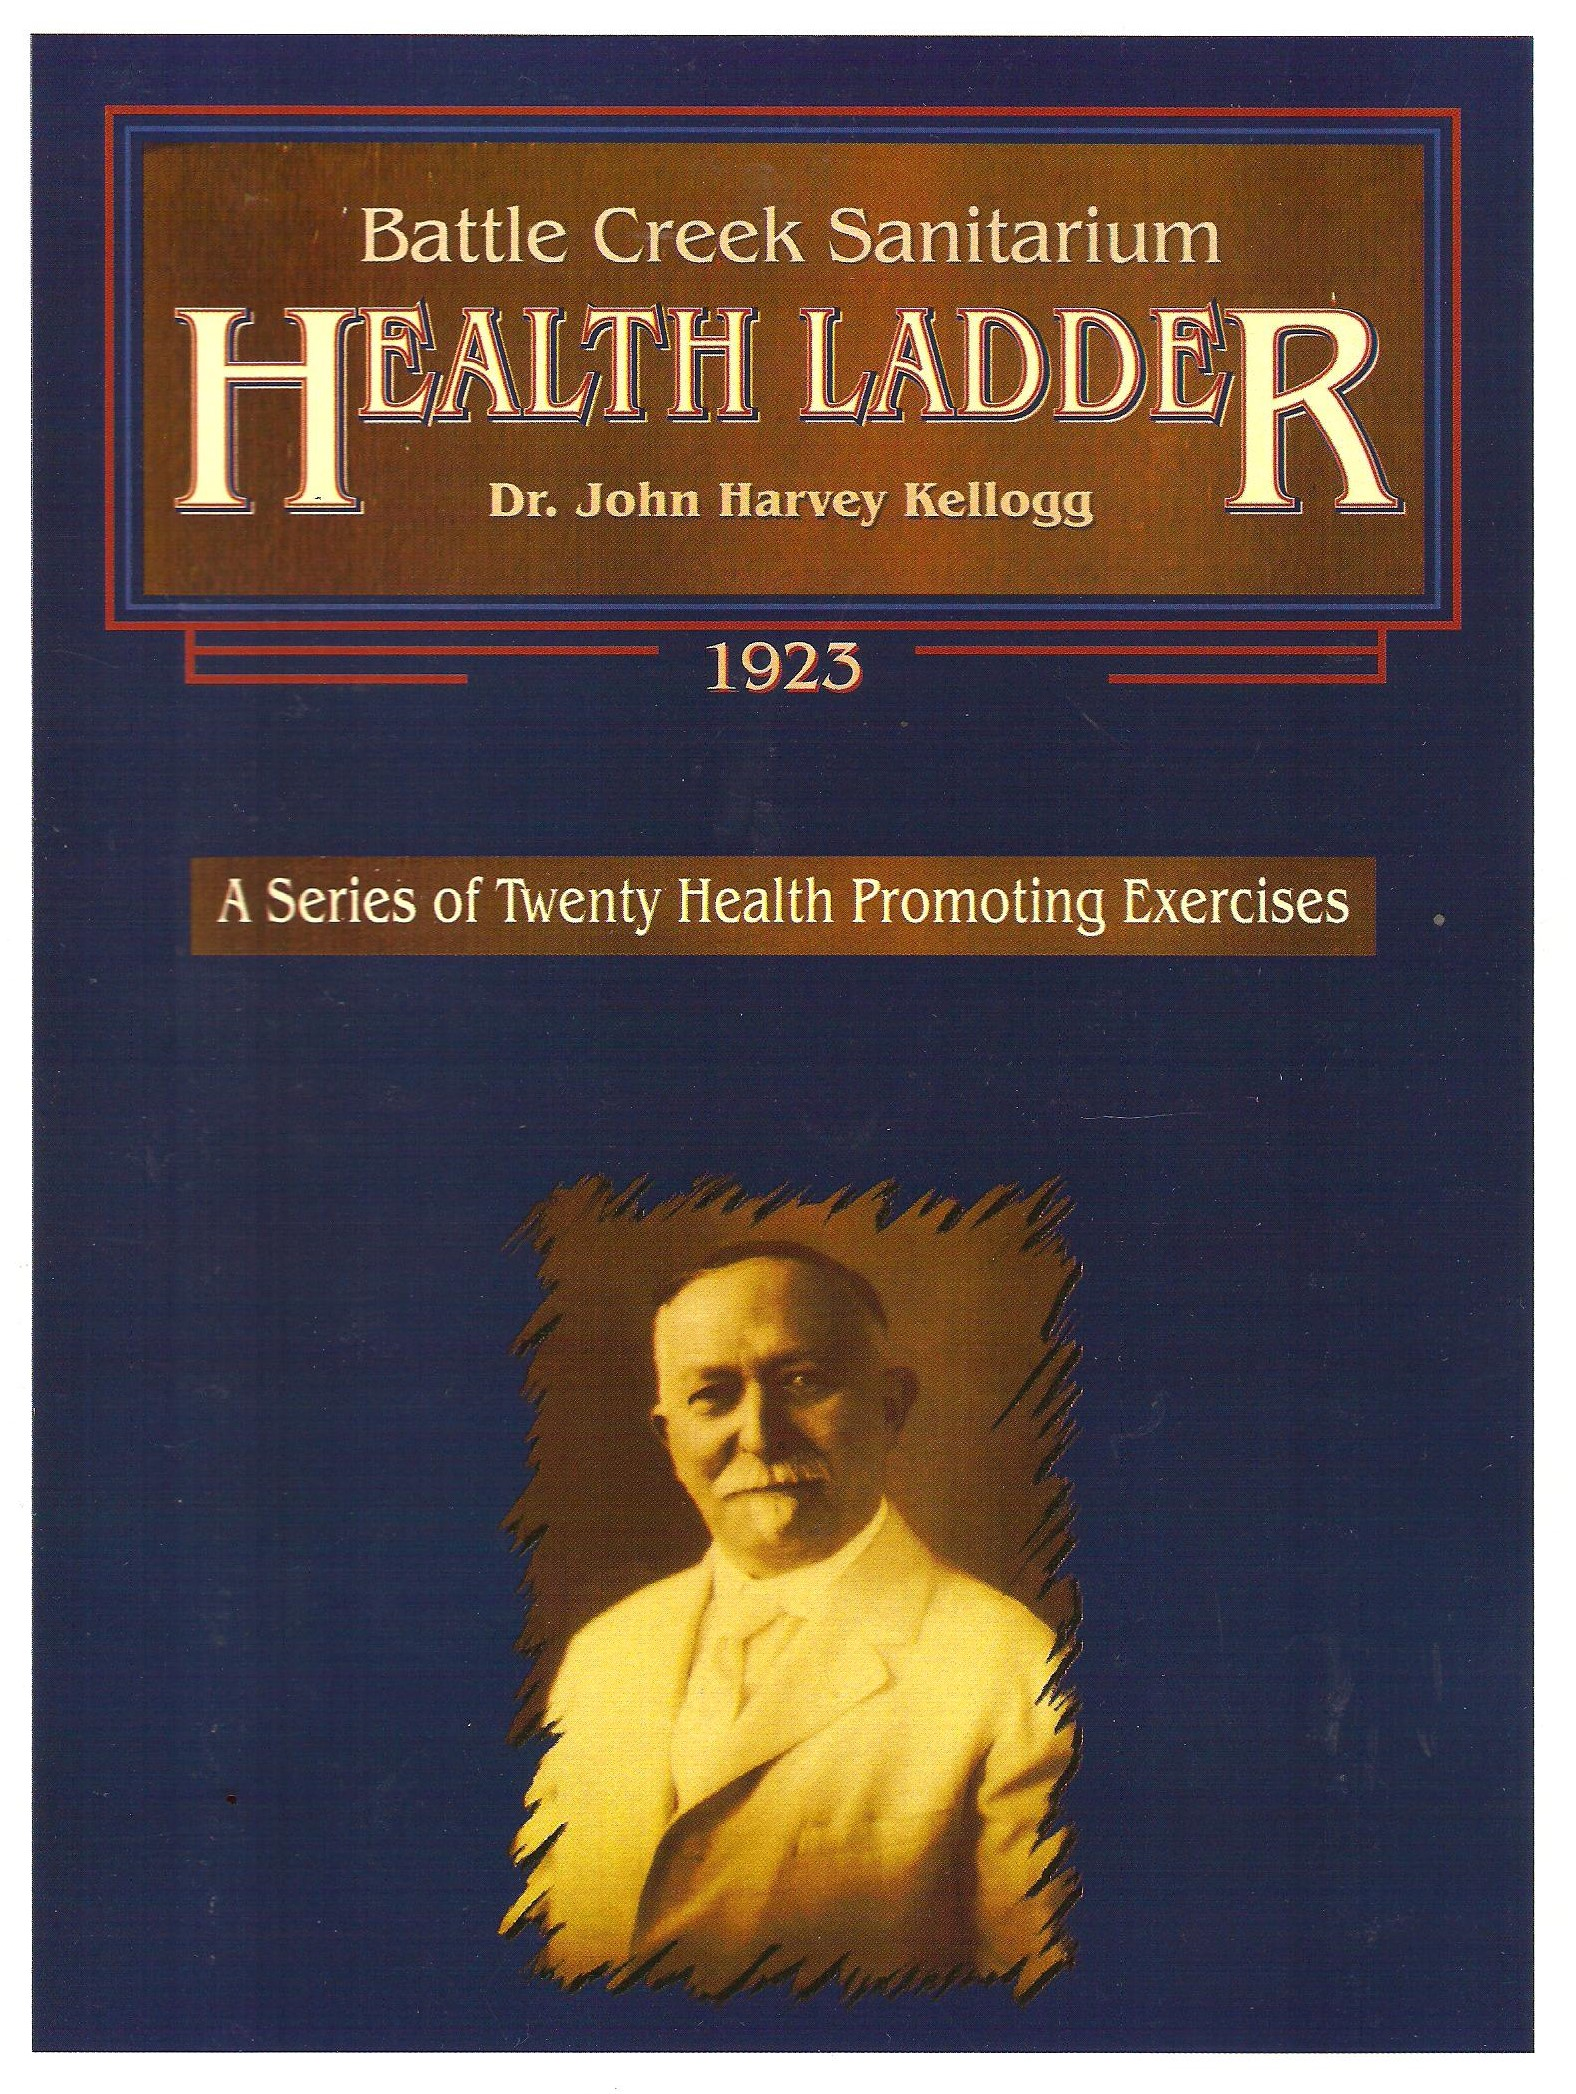 Battle Creek Sanitarium Health Ladder